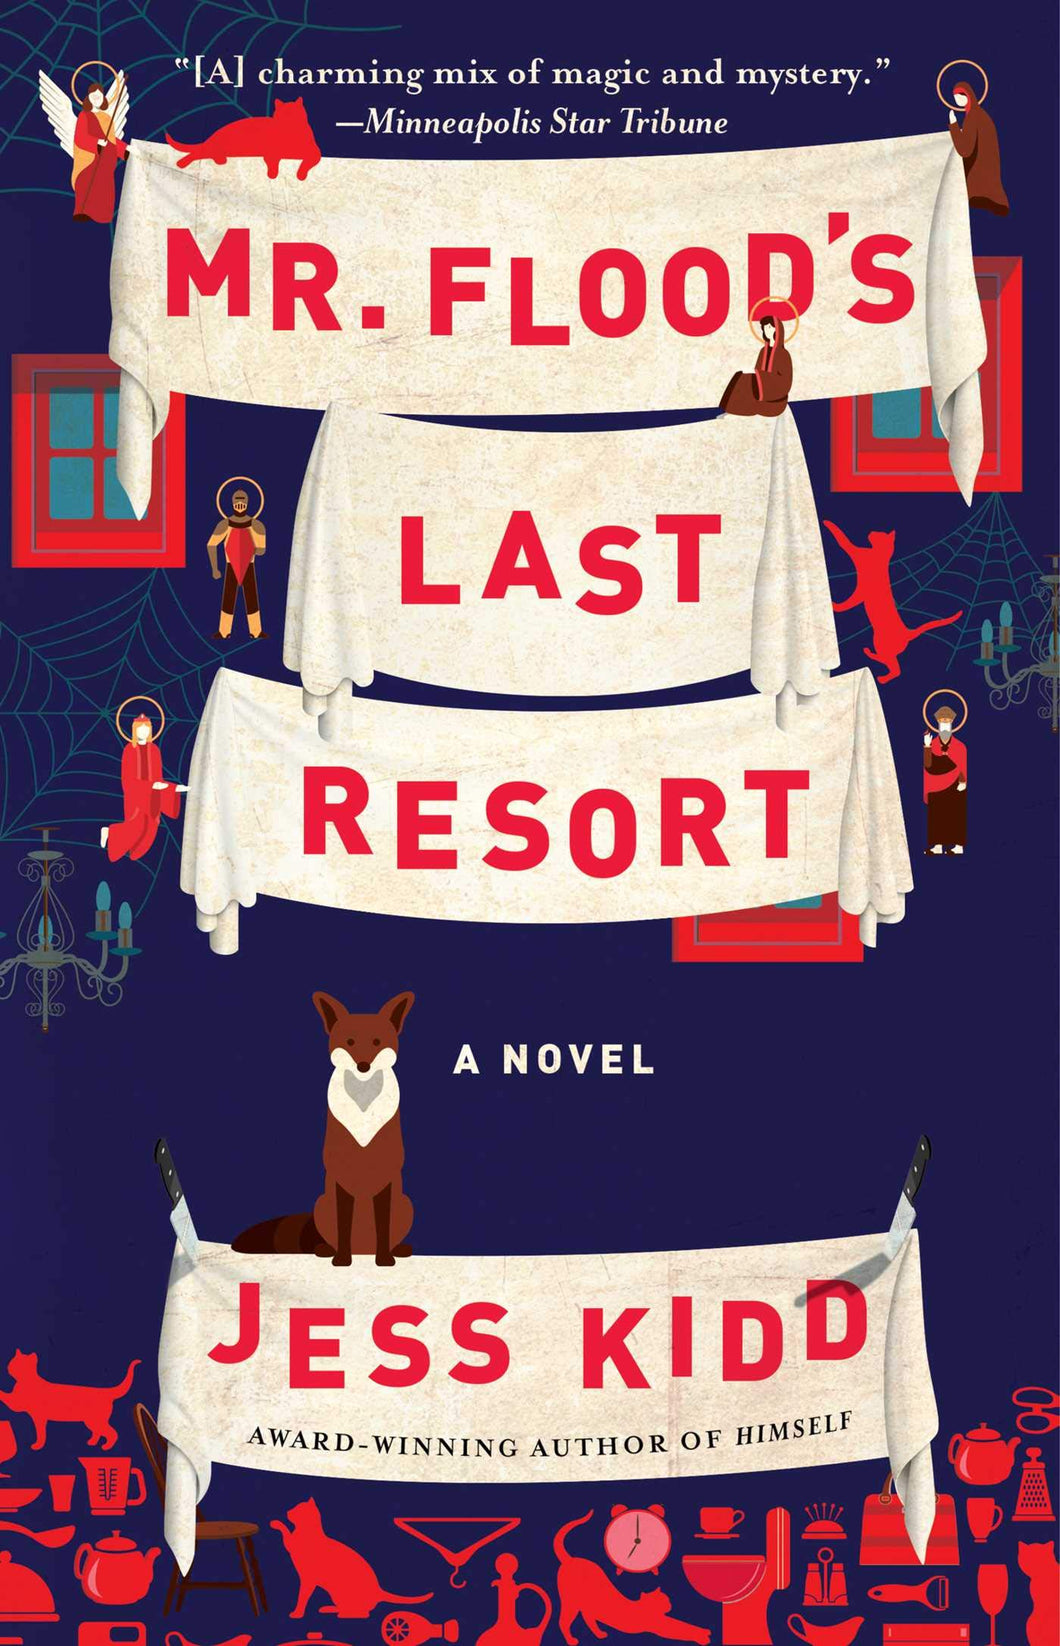 Mr. Flood's Last Resort [Jess Kidd]